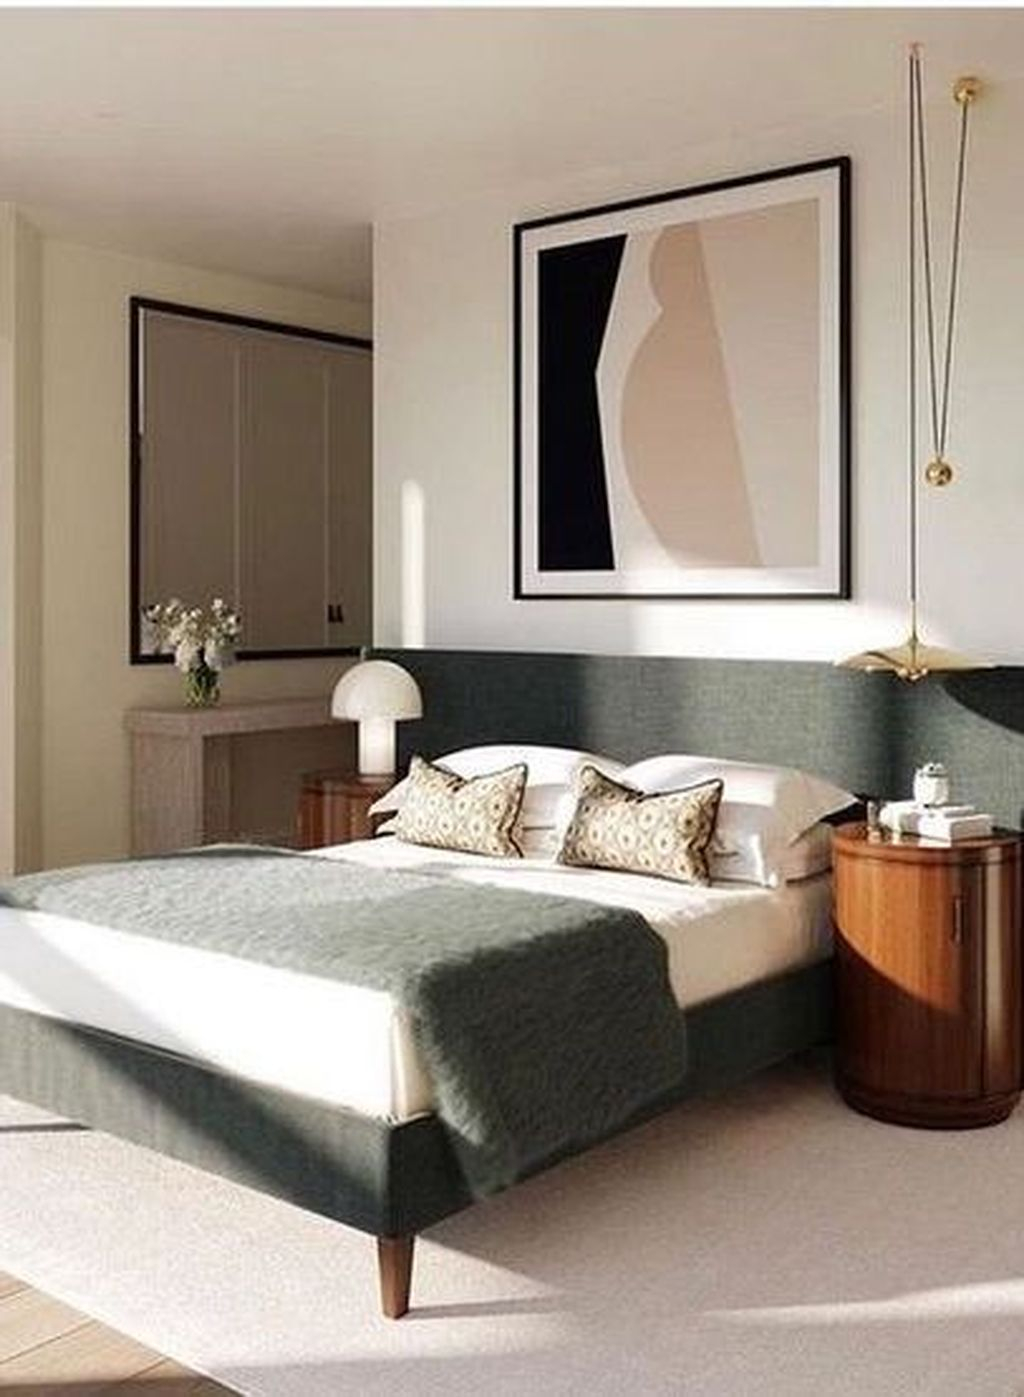 Admiring Bedroom Decor Ideas To Have Right Now 23